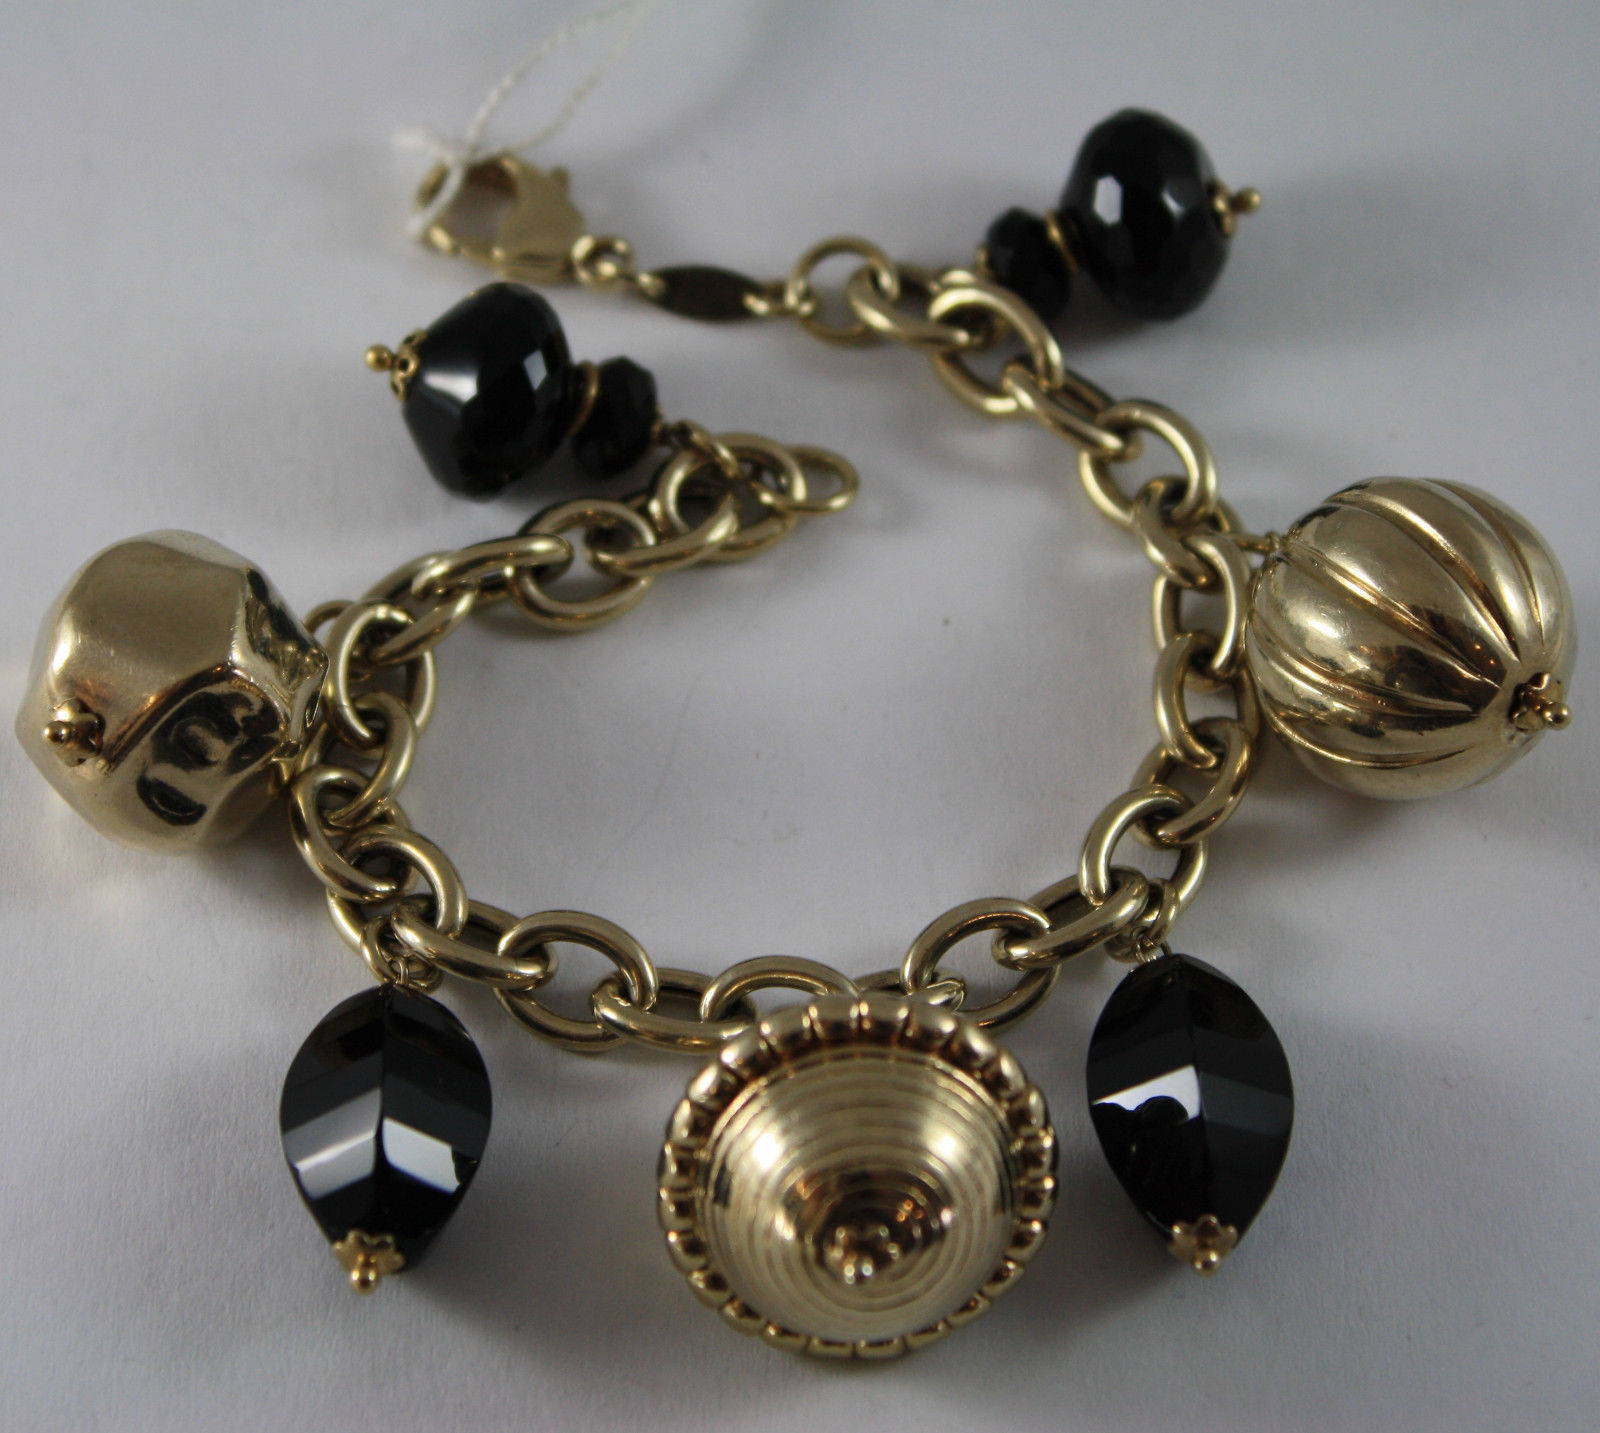 .925 RHODIUM SILVER YELLOW GOLD PLATED BRACELET WITH DROPS OF BLACK ONYX